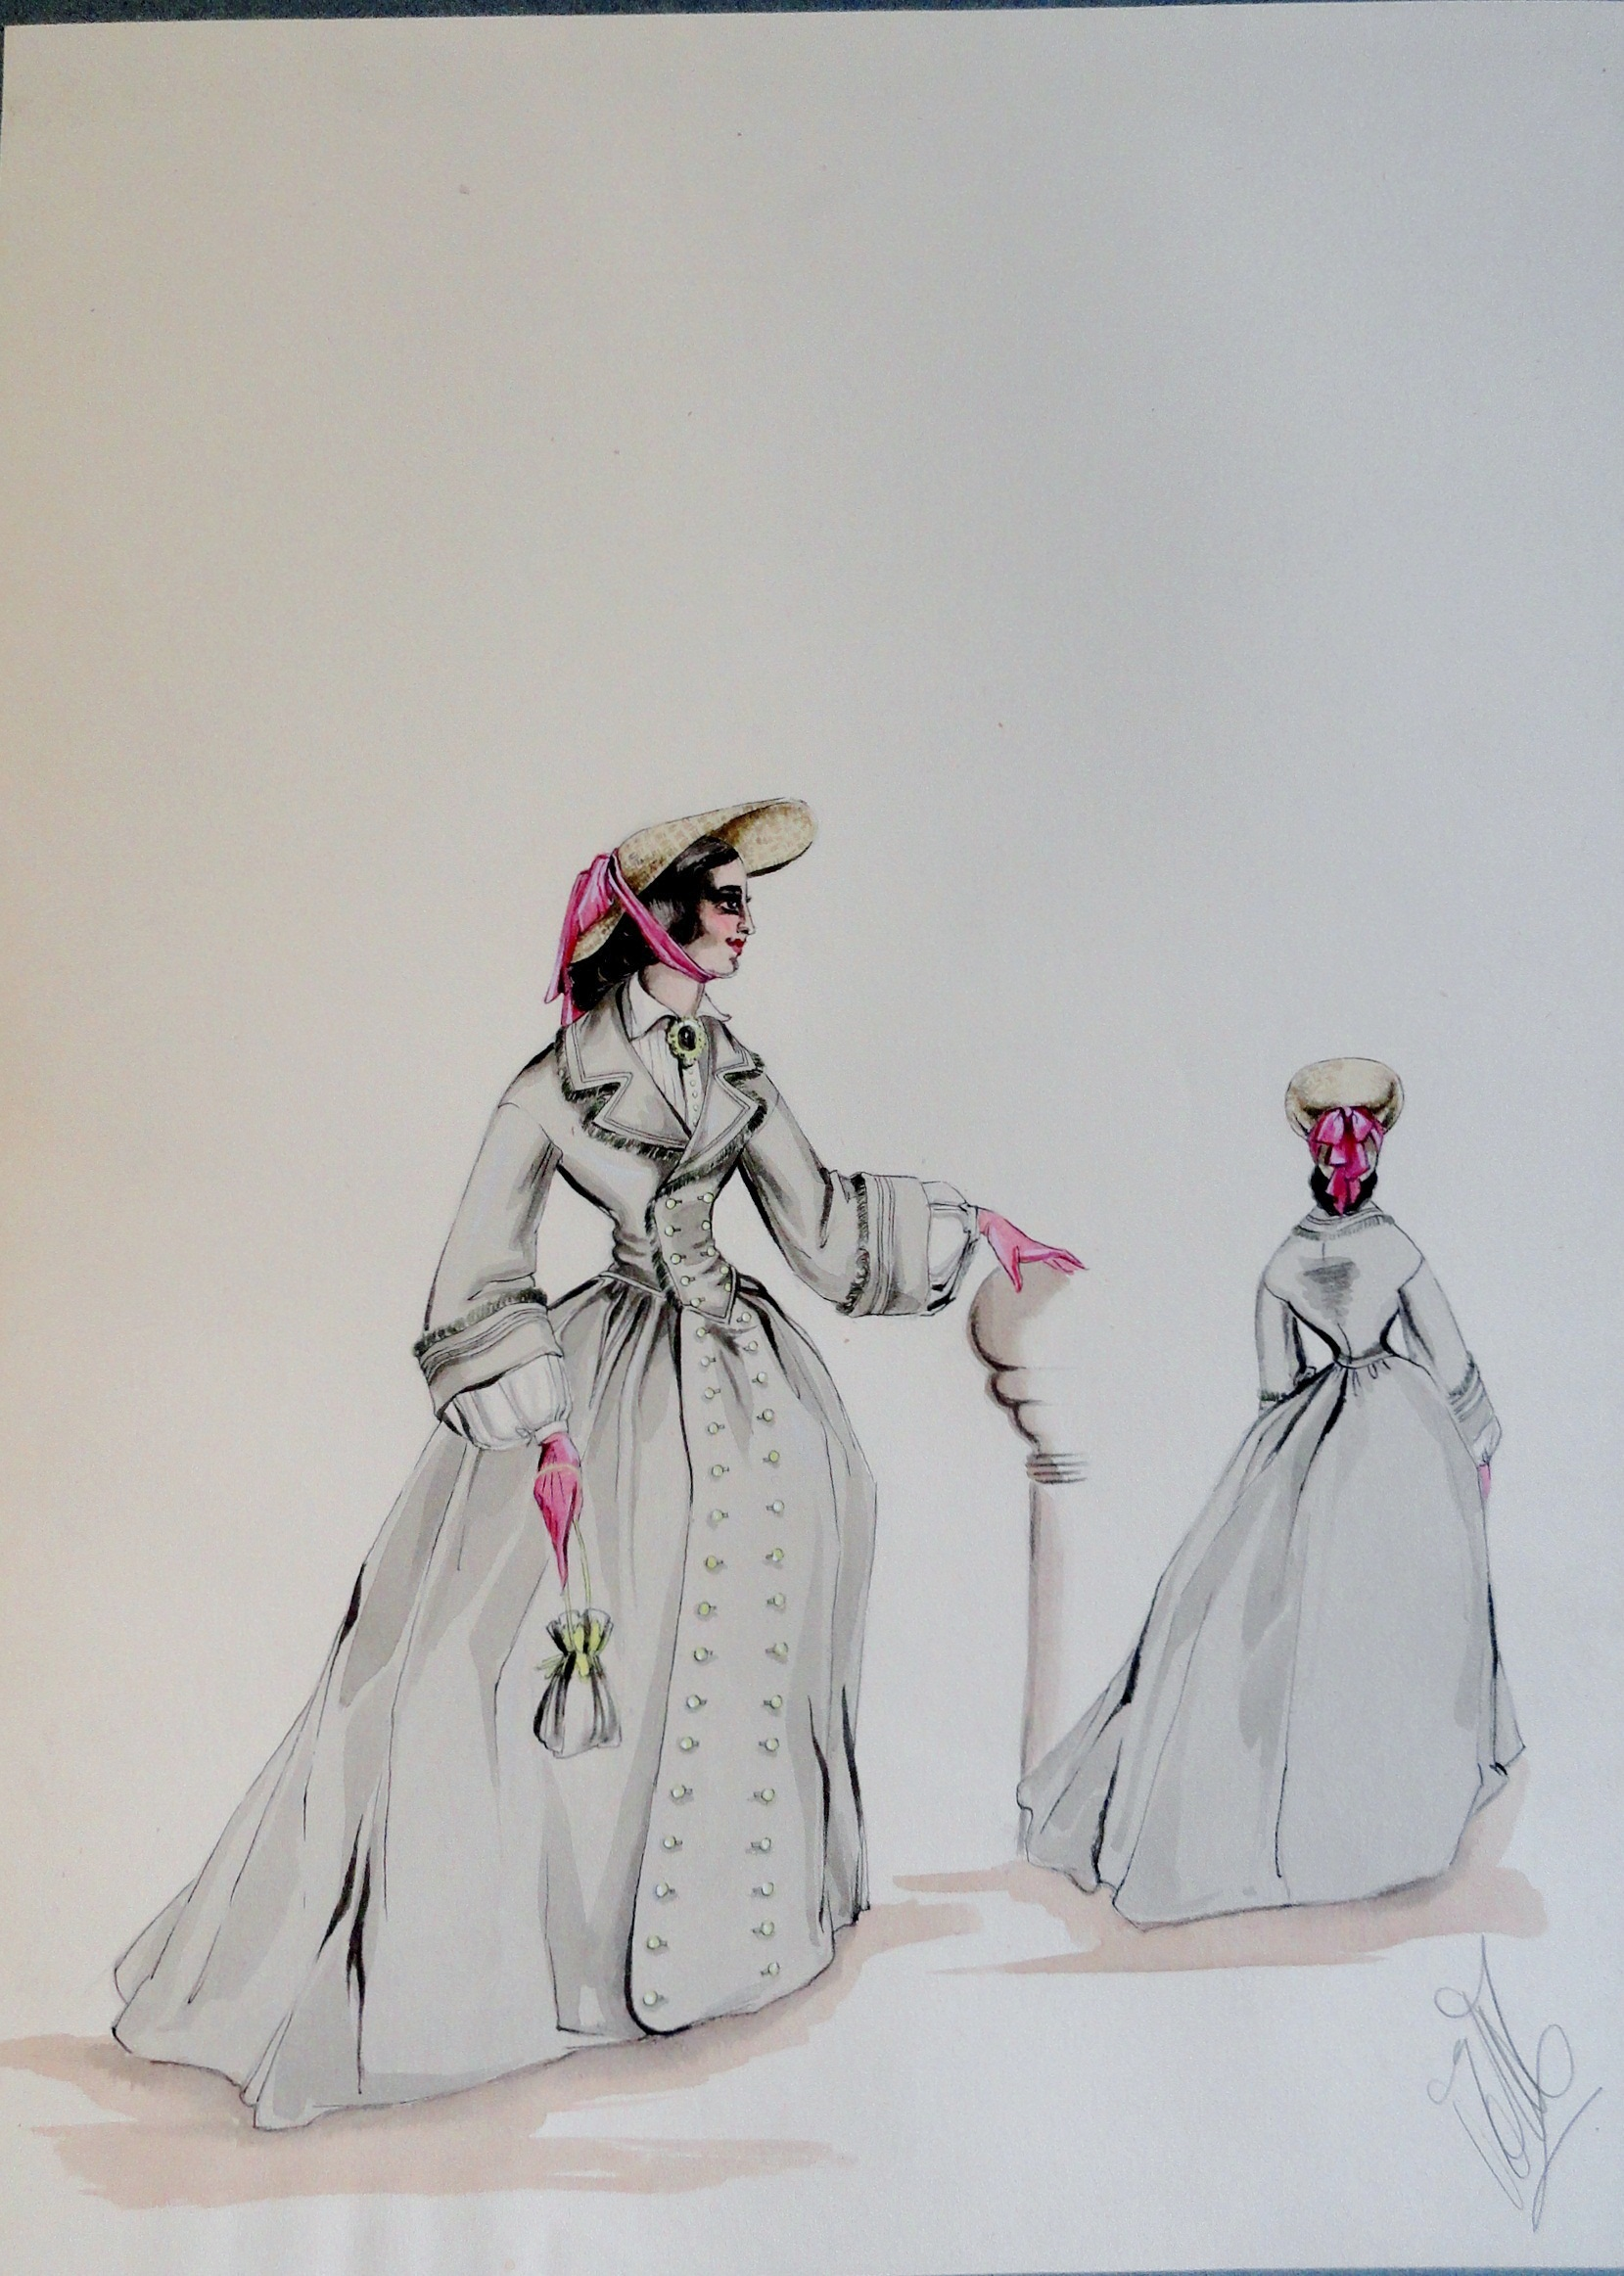 Rachel long grey dress and pink gloves. Pen and ink and watercolor painting. Signed.  From the Rachel Portfolio by Owen Hyde Clark. $300.00.